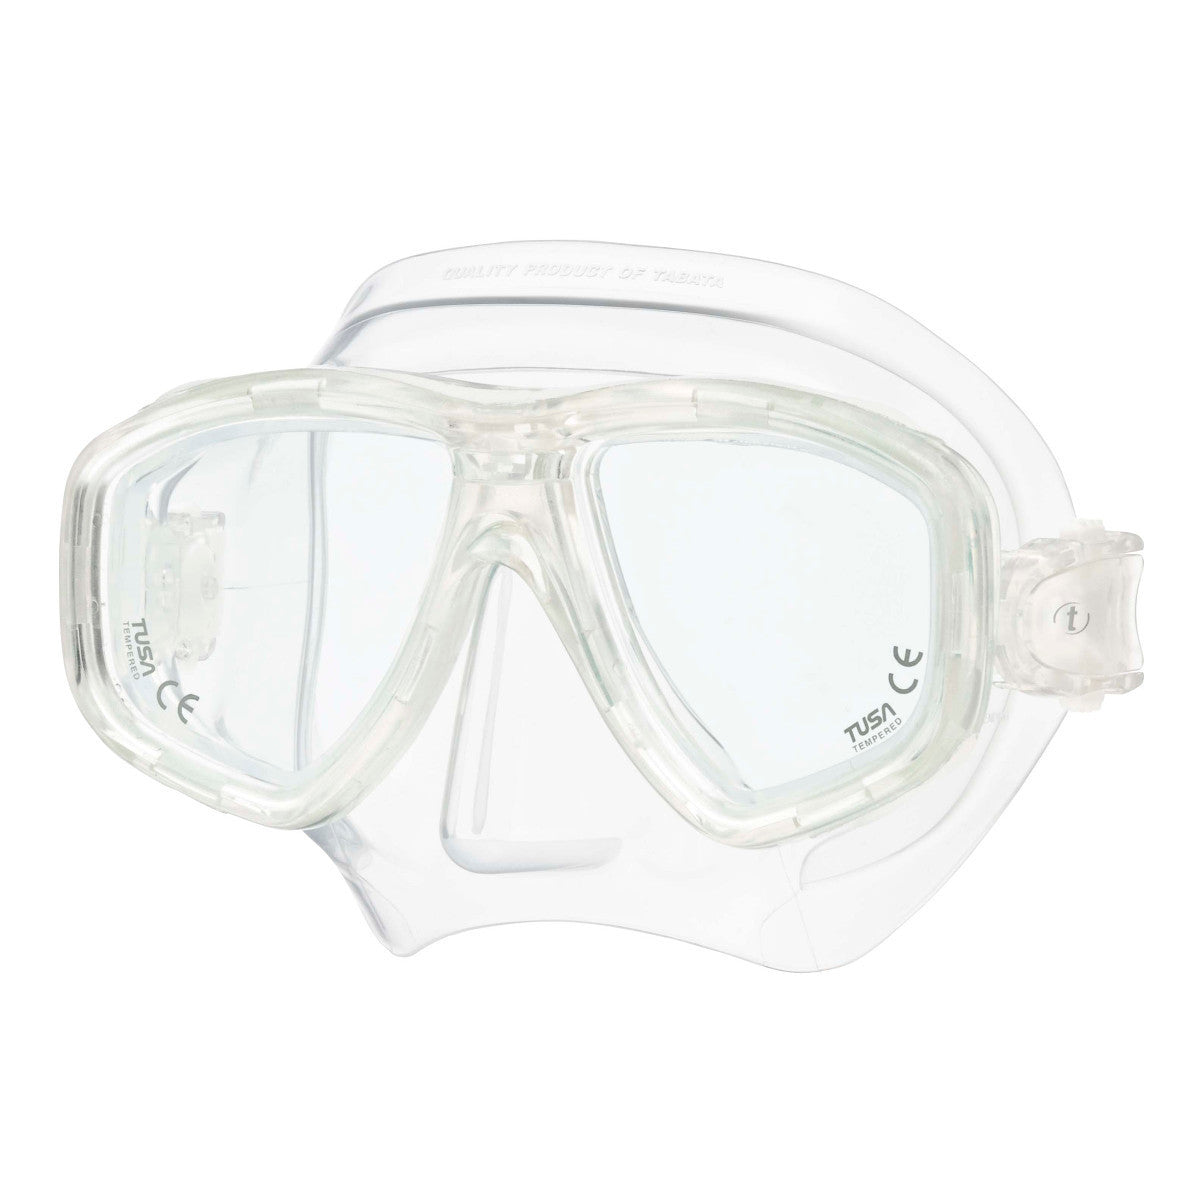 TUSA Geminus Mask - Oyster Diving Shop - 4